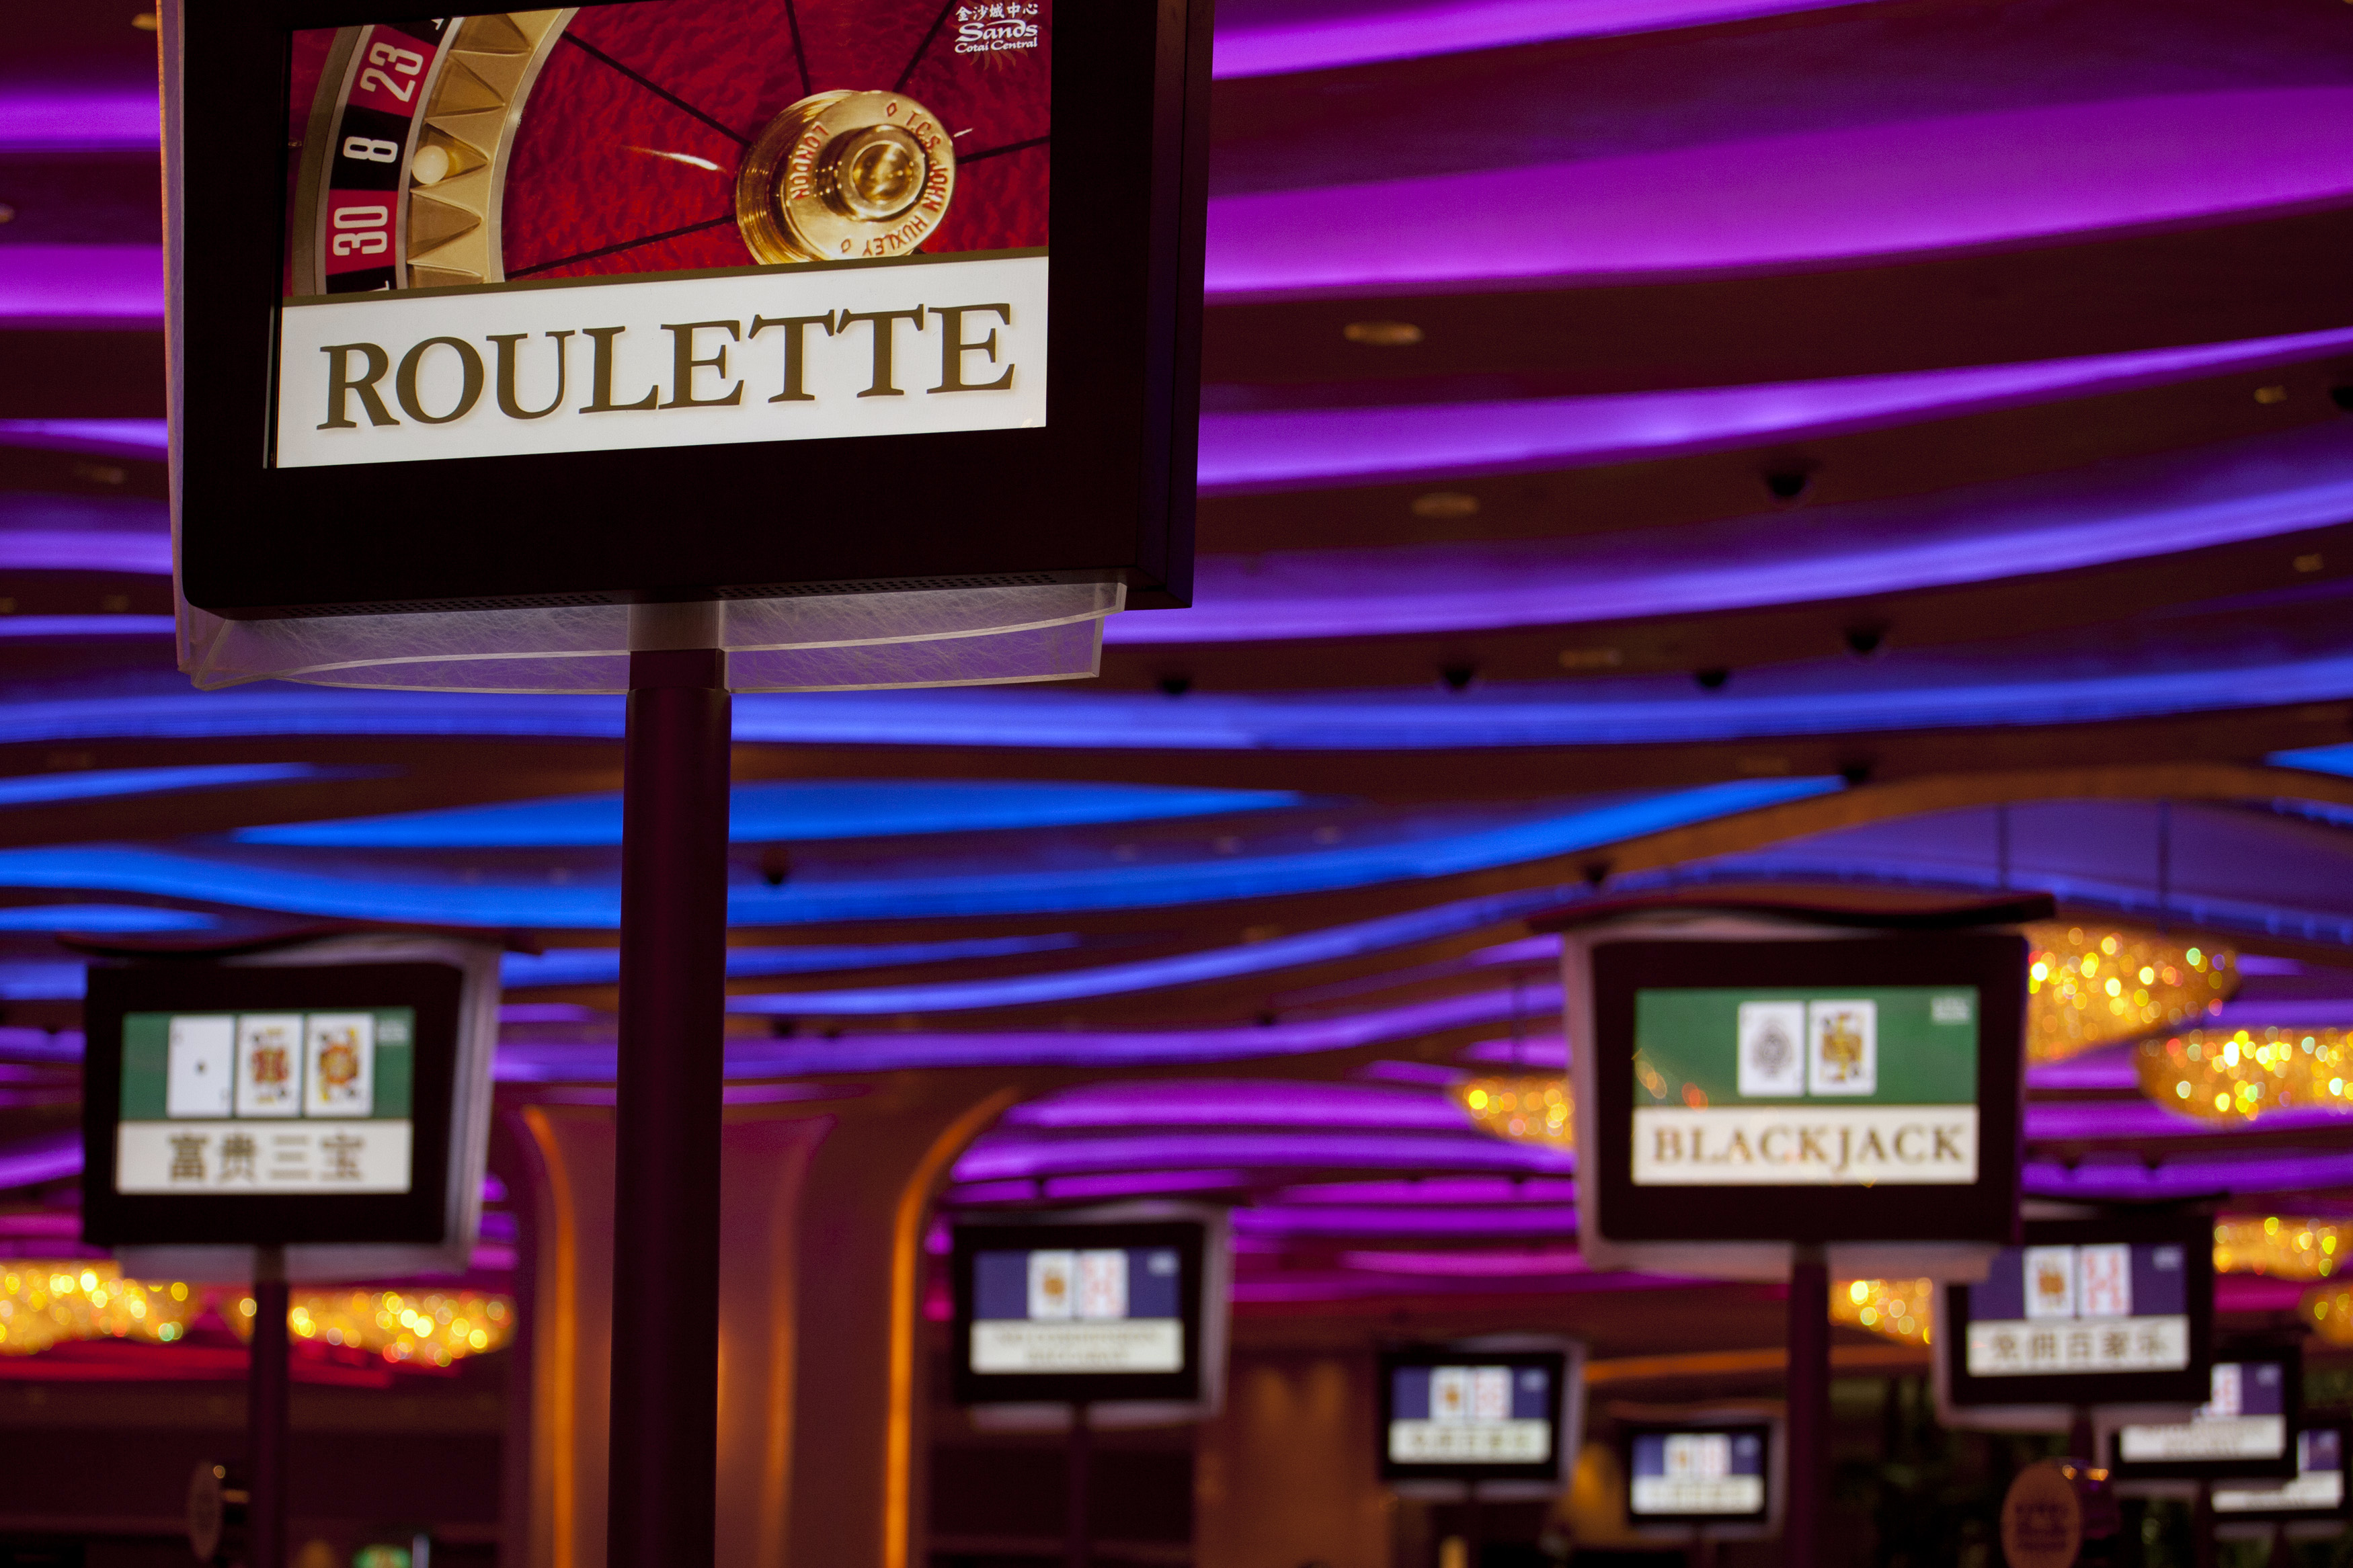 Electronic monitors are seen inside a casino on the opening day of Sheraton Macao hotel at Sands Cotai Central in Macau September 20, 2012.  REUTERS/Tyrone Siu